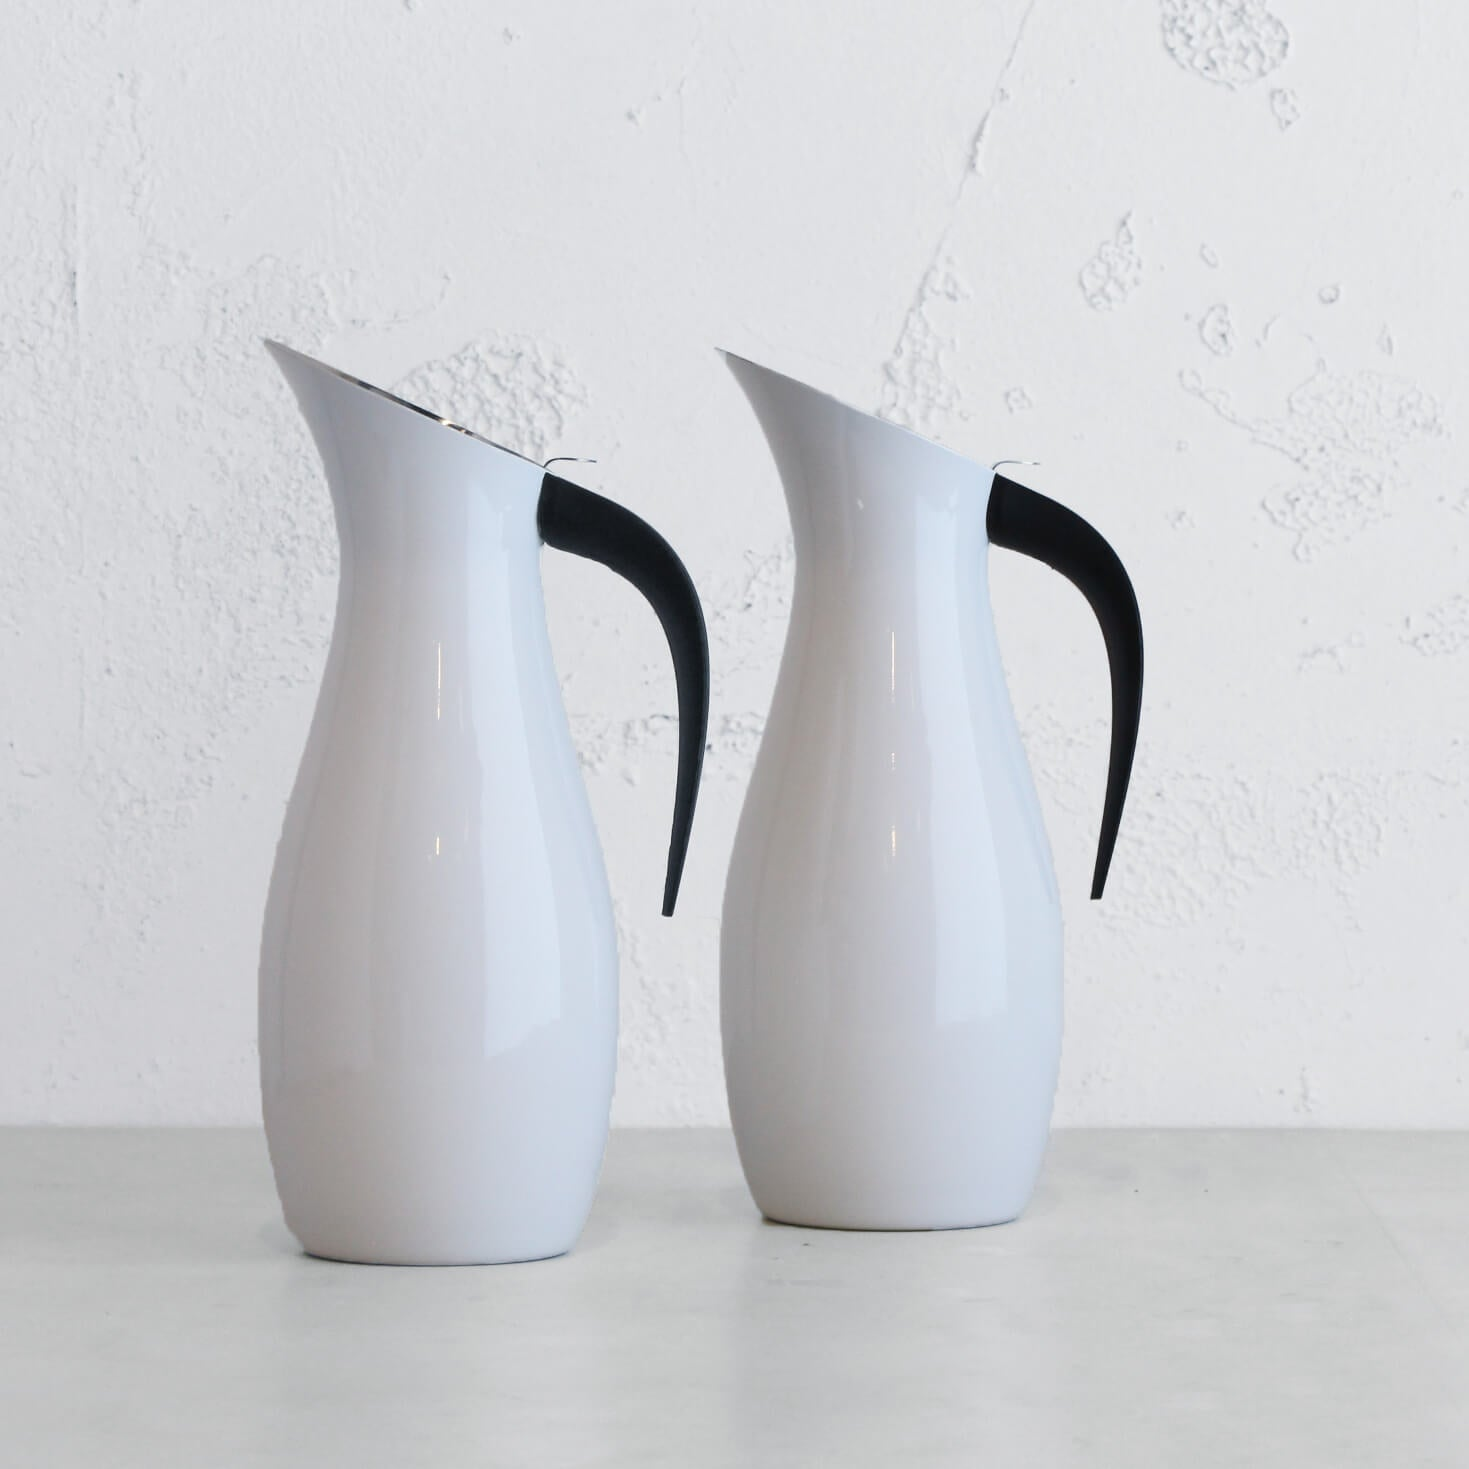 NUANCE WATER JUG TWO-PACK  |  STAINLESS STEEL + POLISHED WHITE EXTERIOR